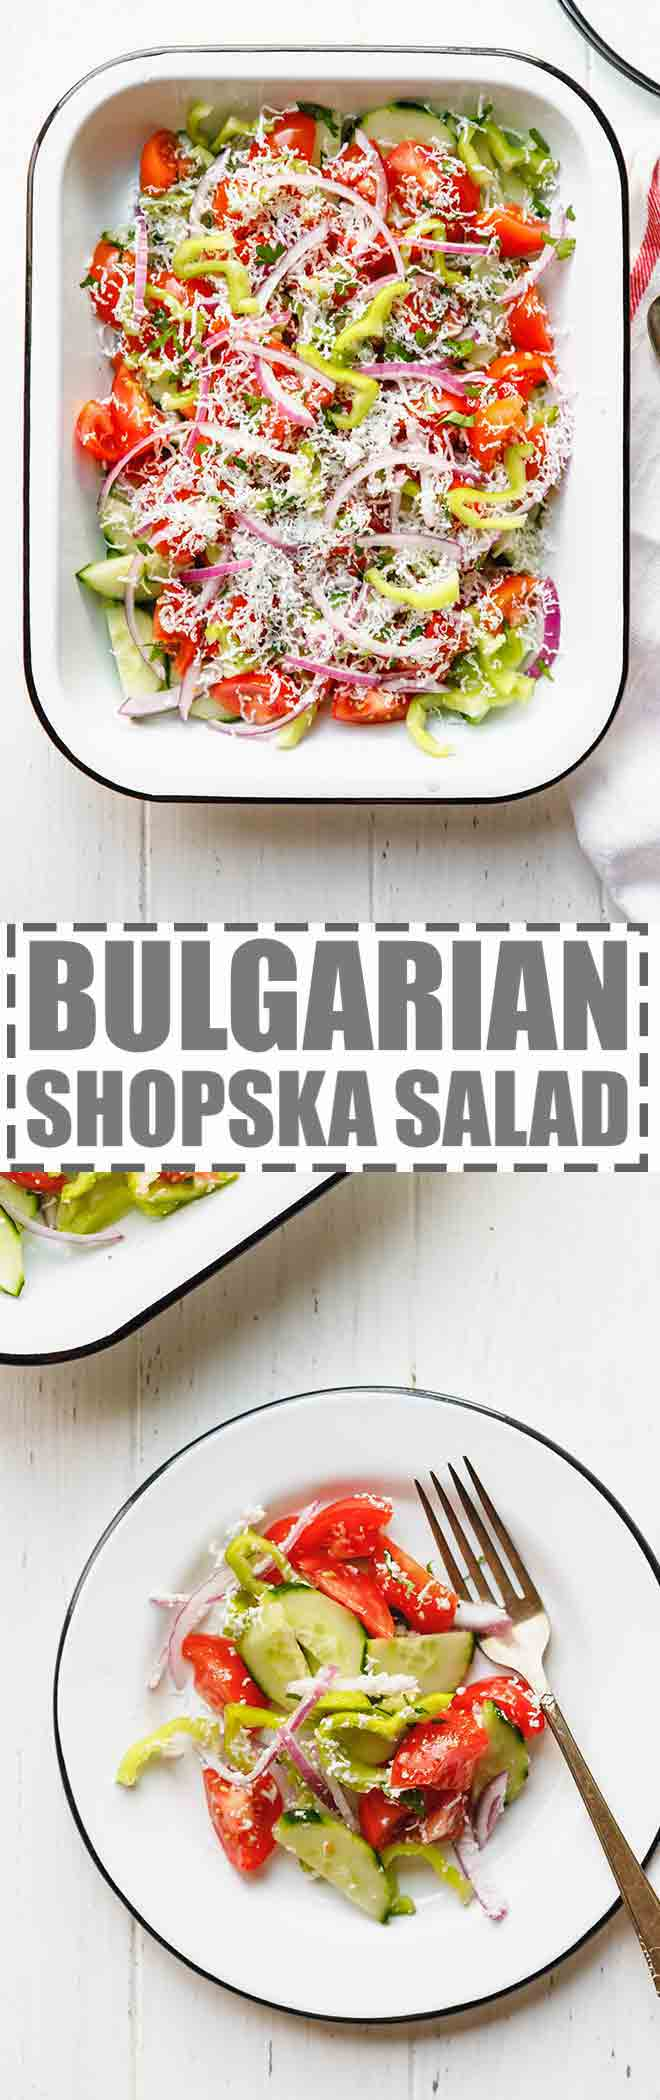 Shopska Salad Recipe - Bulgarian Tomato And Cucumber Salad, light summer salad made with tomatoes, cucumbers, peppers, onions, feta cheese and a light olive oil and salt dressing. #salad #bulgarian #shopskasalad